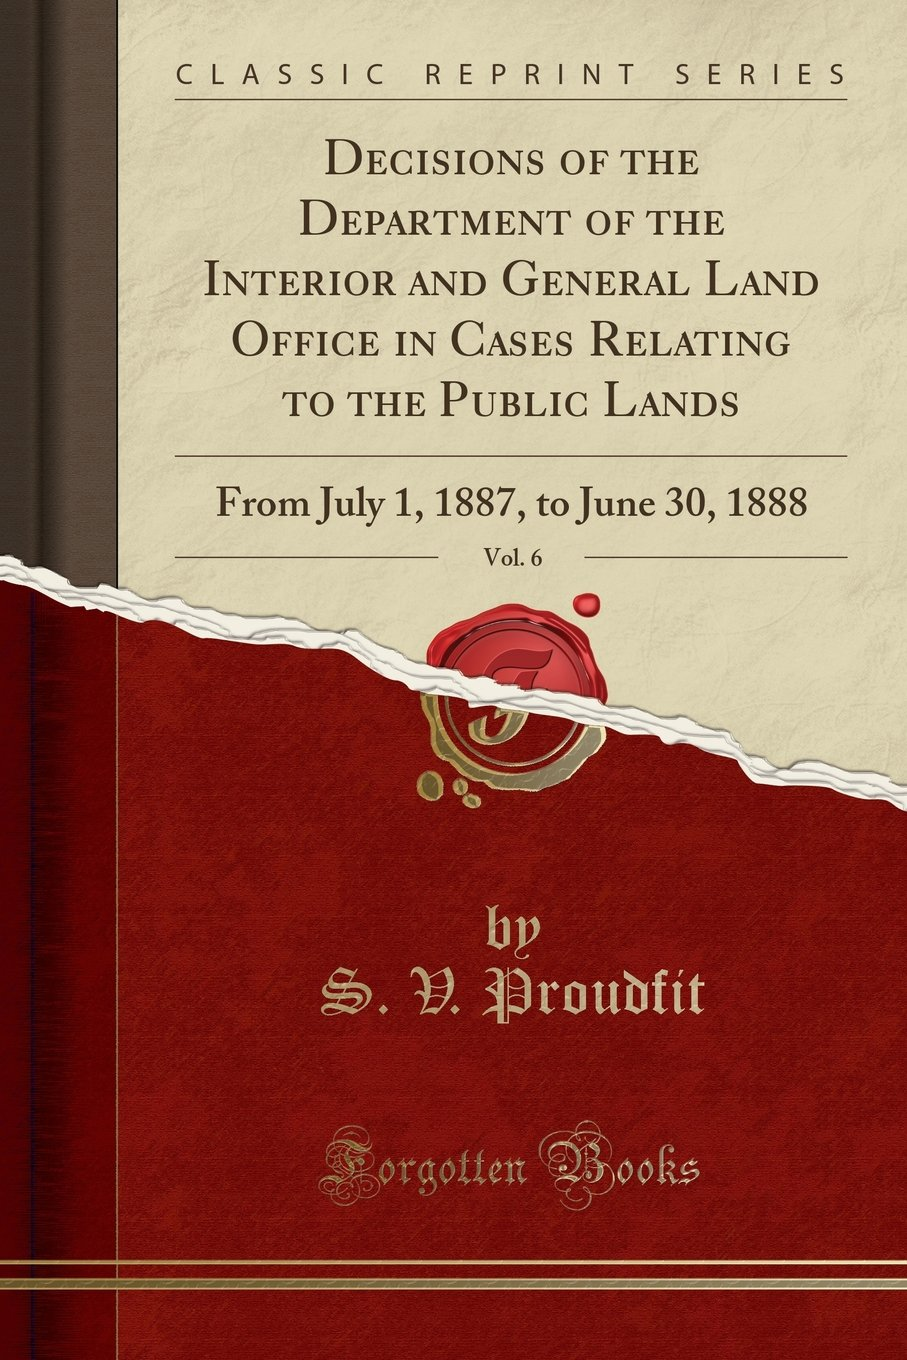 Download Decisions of the Department of the Interior and General Land Office in Cases Relating to the Public Lands, Vol. 6: From July 1, 1887, to June 30, 1888 (Classic Reprint) pdf epub